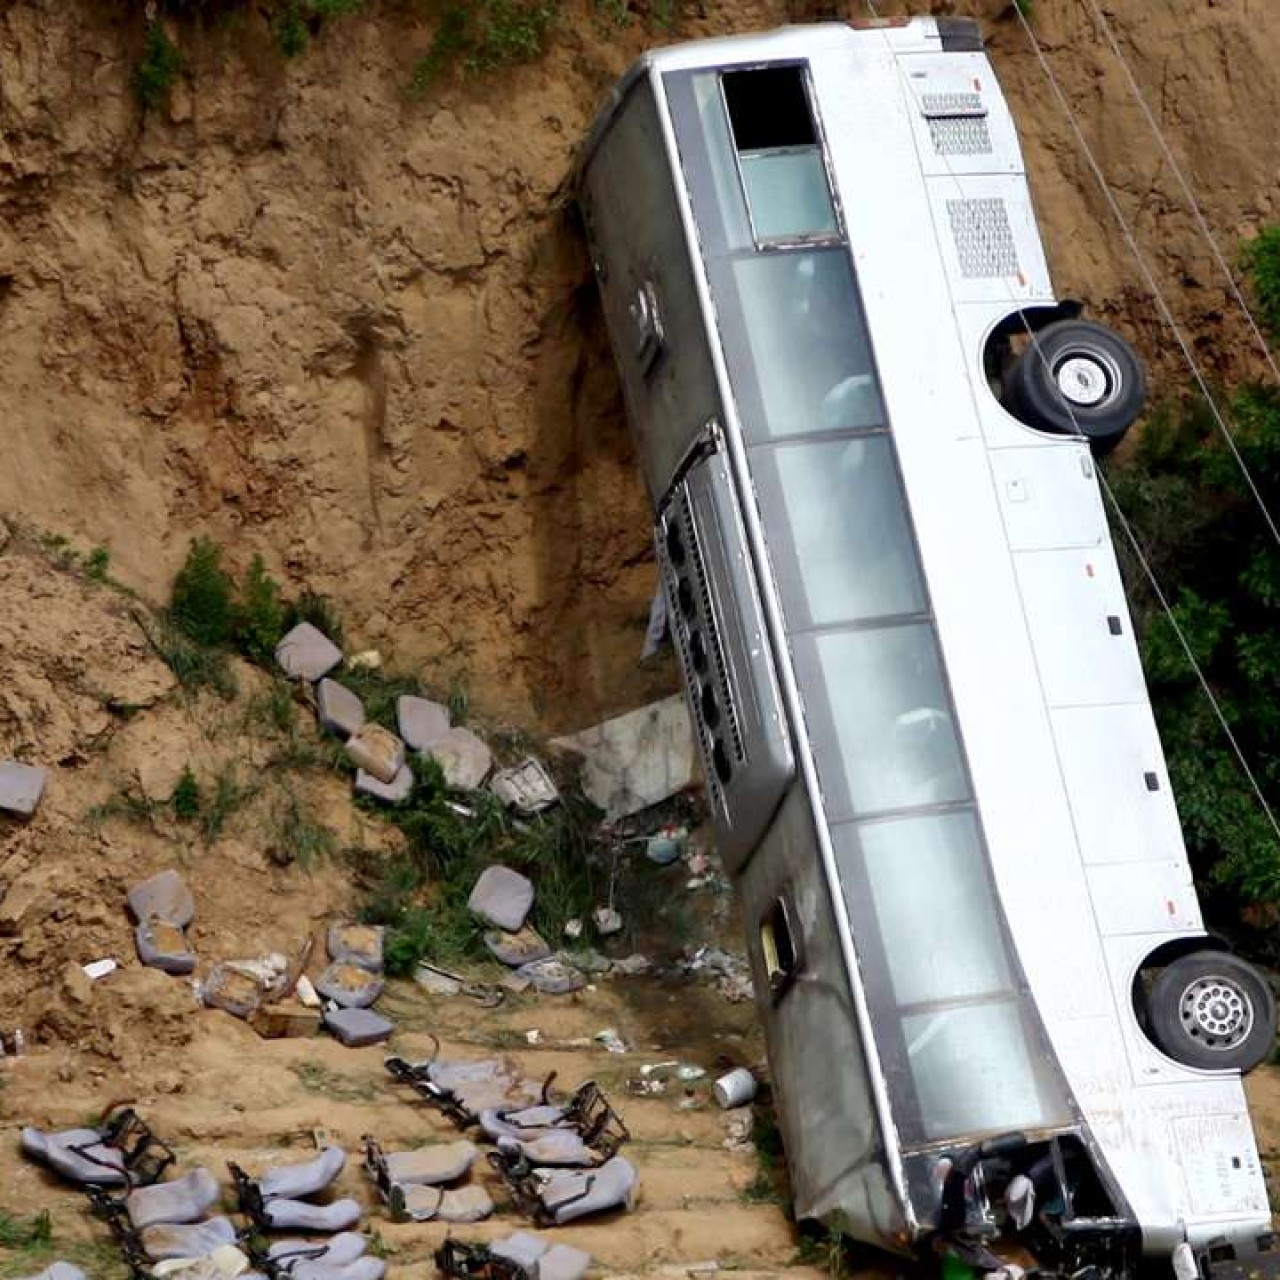 Traffic's toll: road accidents kill 700 people a day in